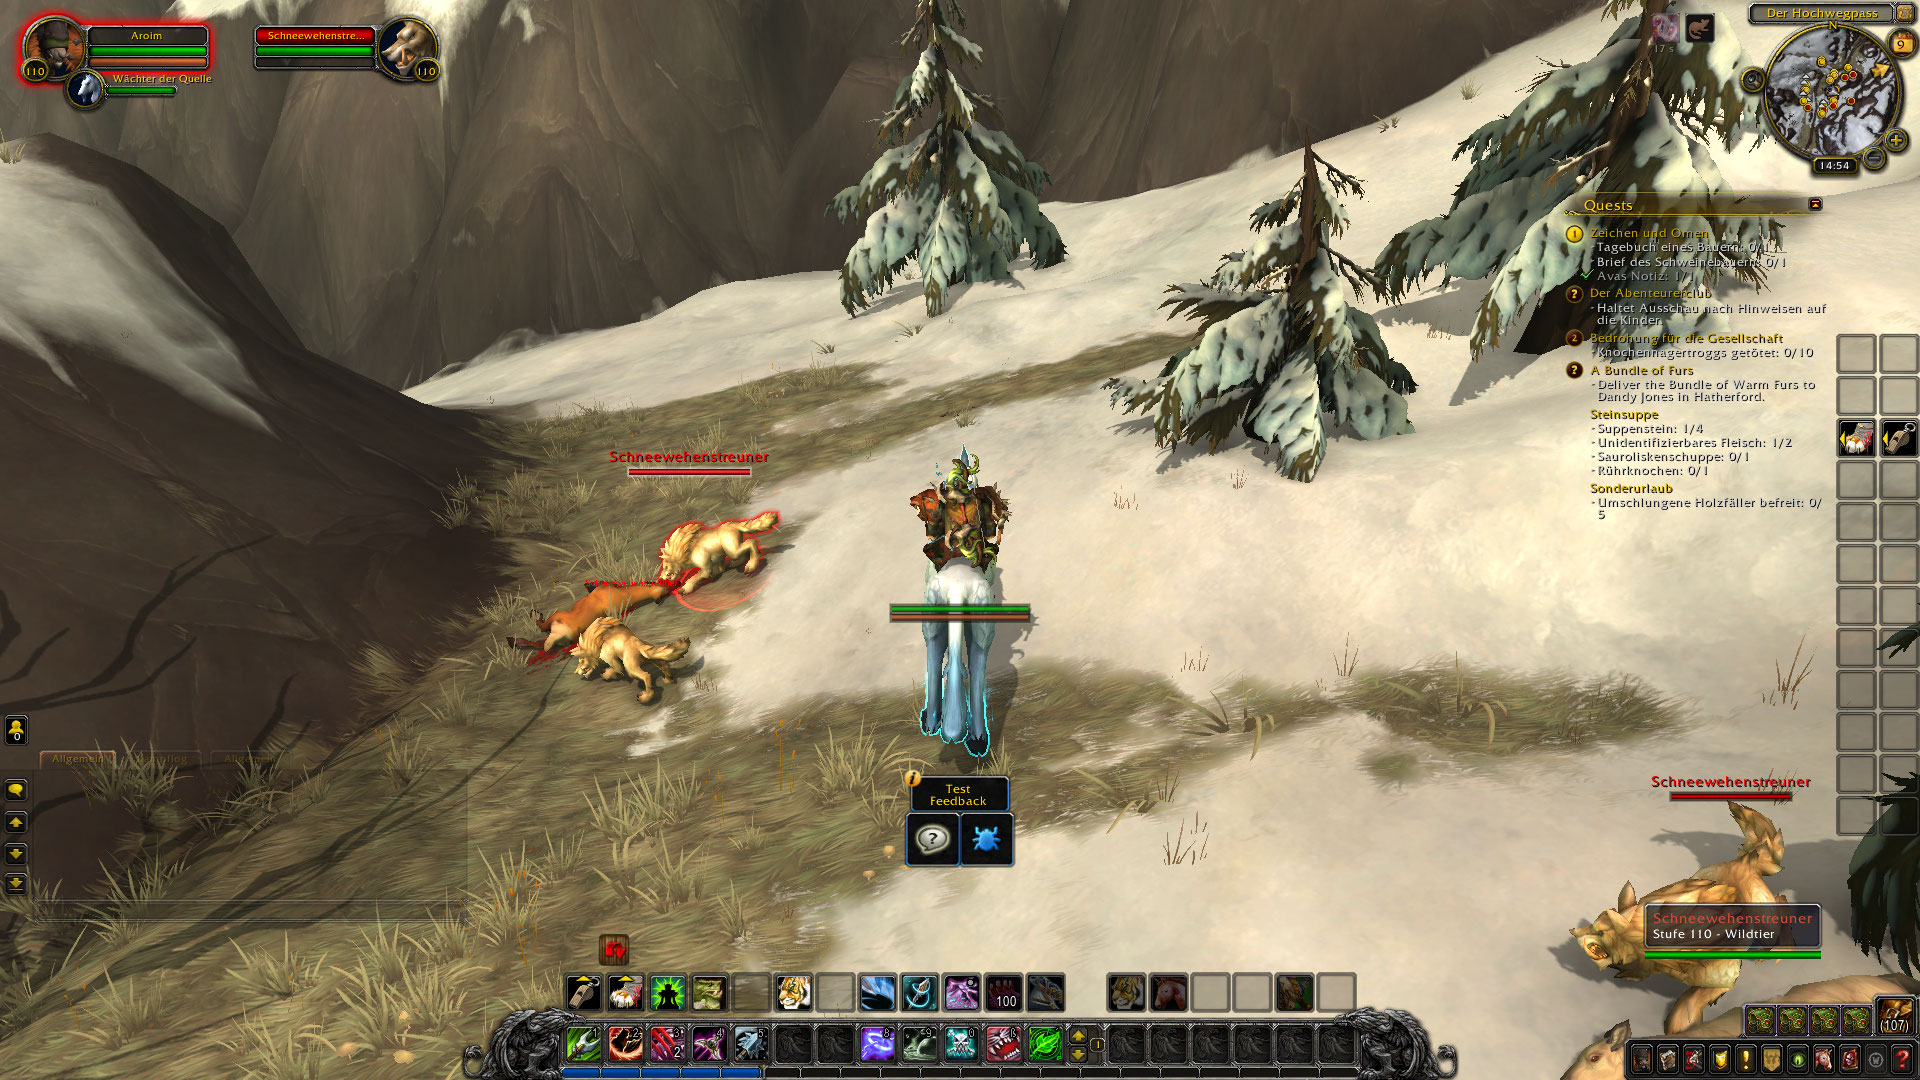 Light Brown Draenor Wolf.jpg